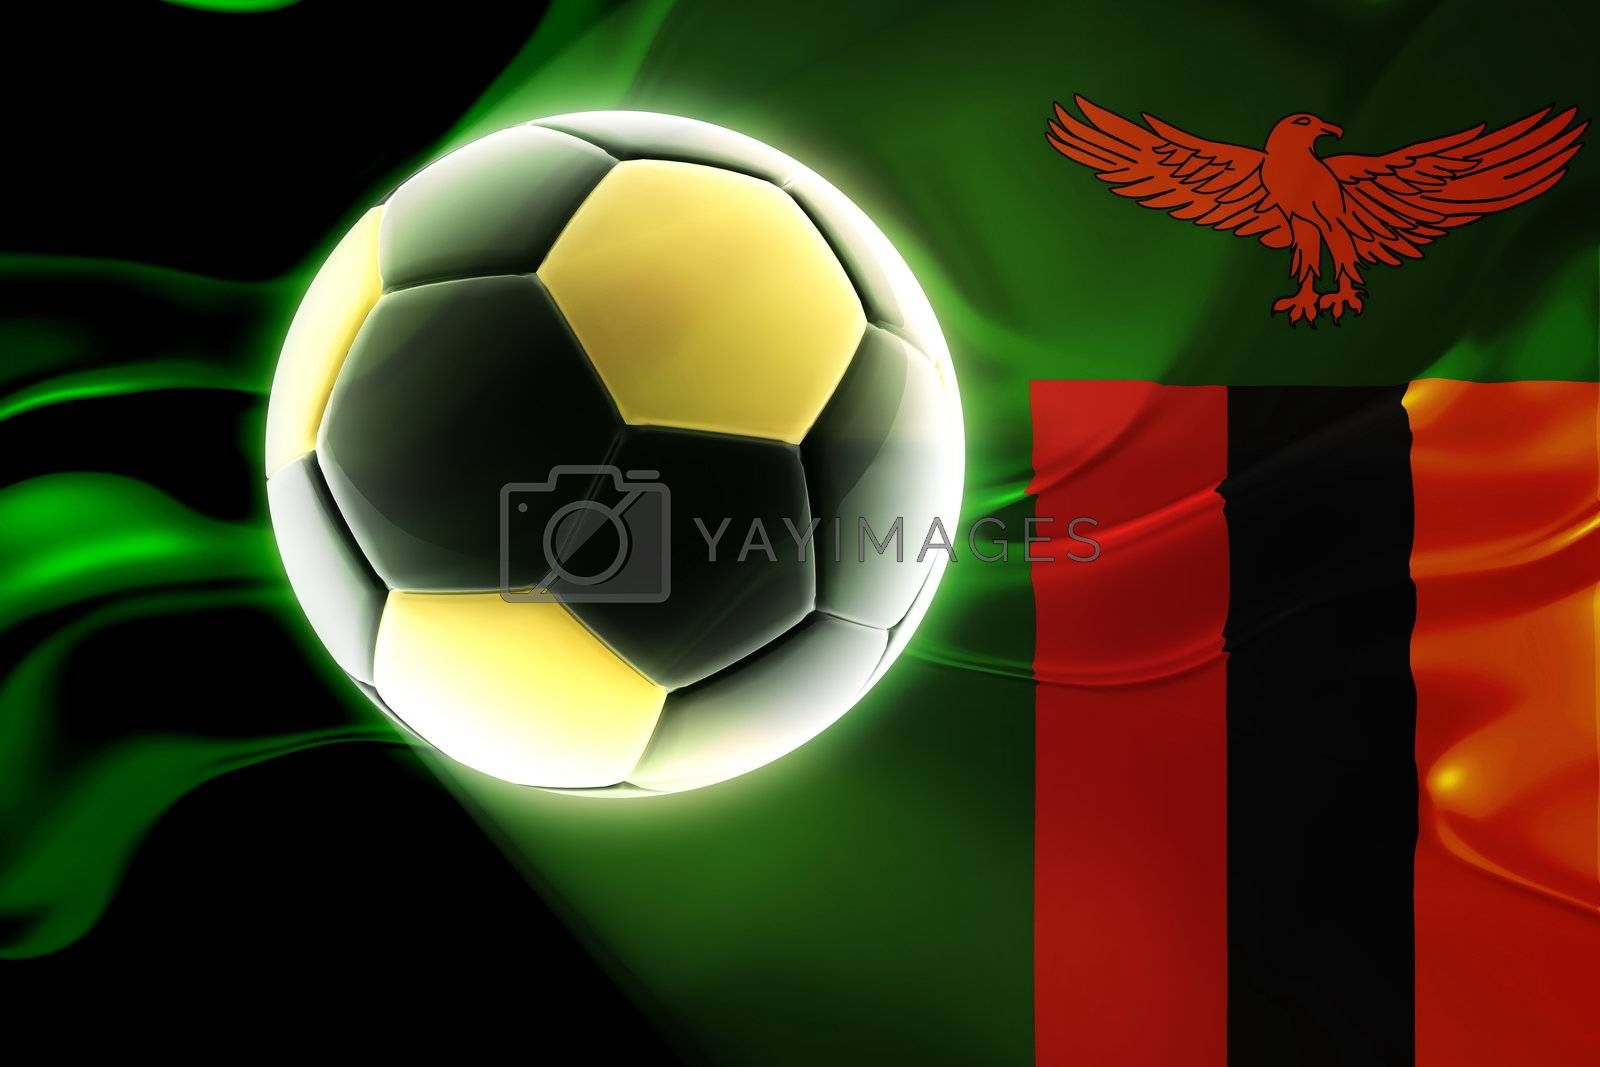 Flag of Zambia, national country symbol illustration wavy fabric sports soccer football